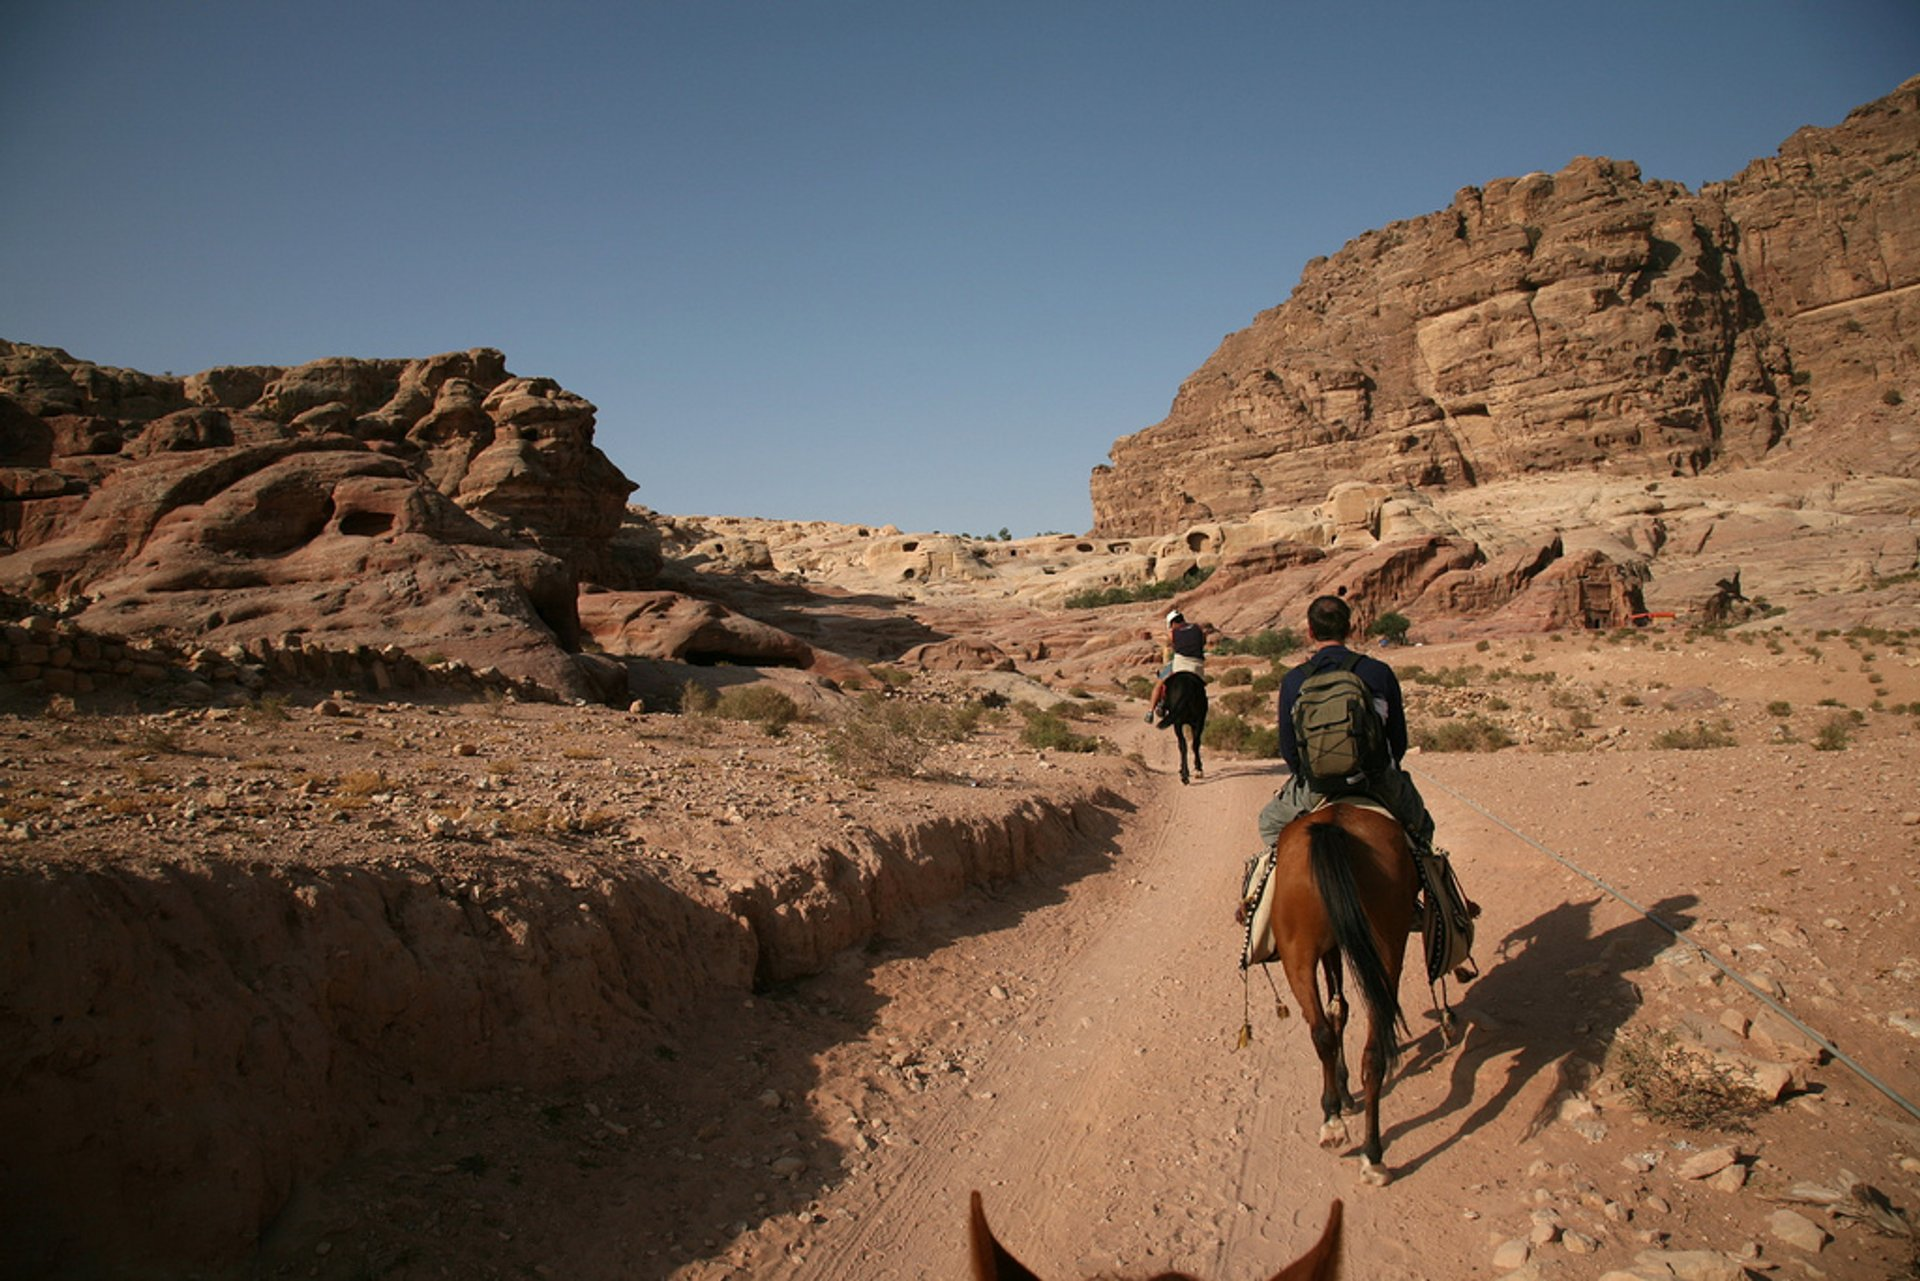 Horseback Riding in Jordan - Best Season 2020